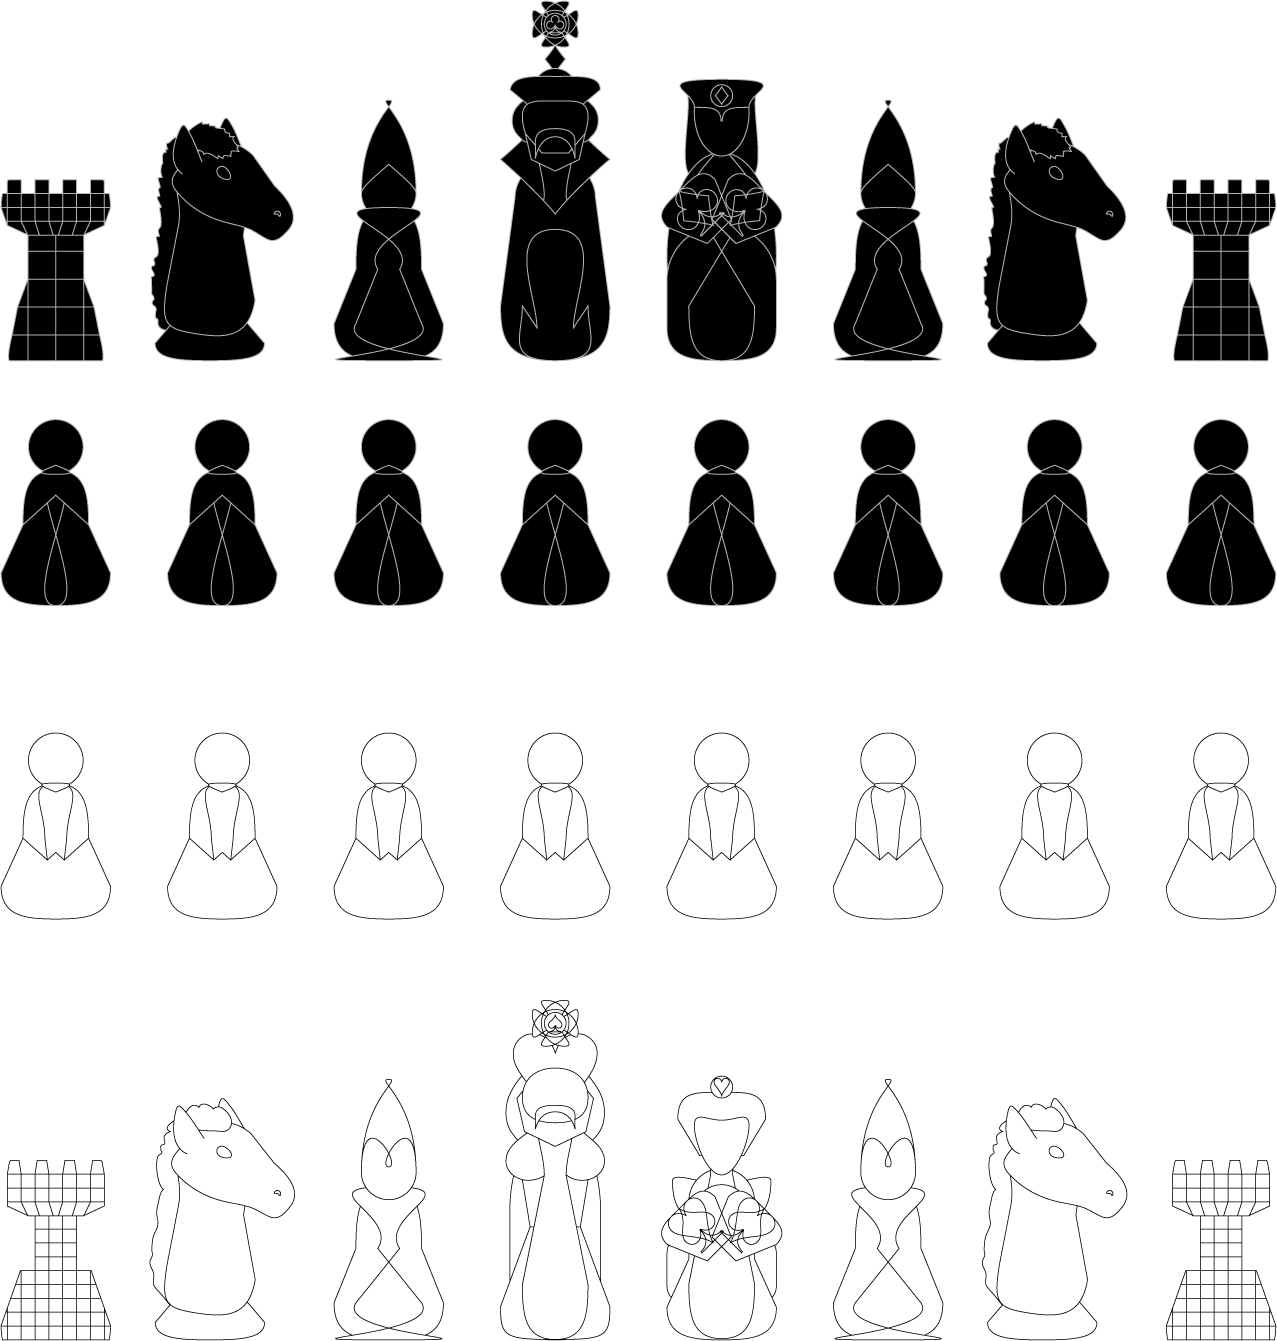 Pieces by yamitora1 on deviantart chess pieces by yamitora1 chess pieces by yamitora1 biocorpaavc Gallery